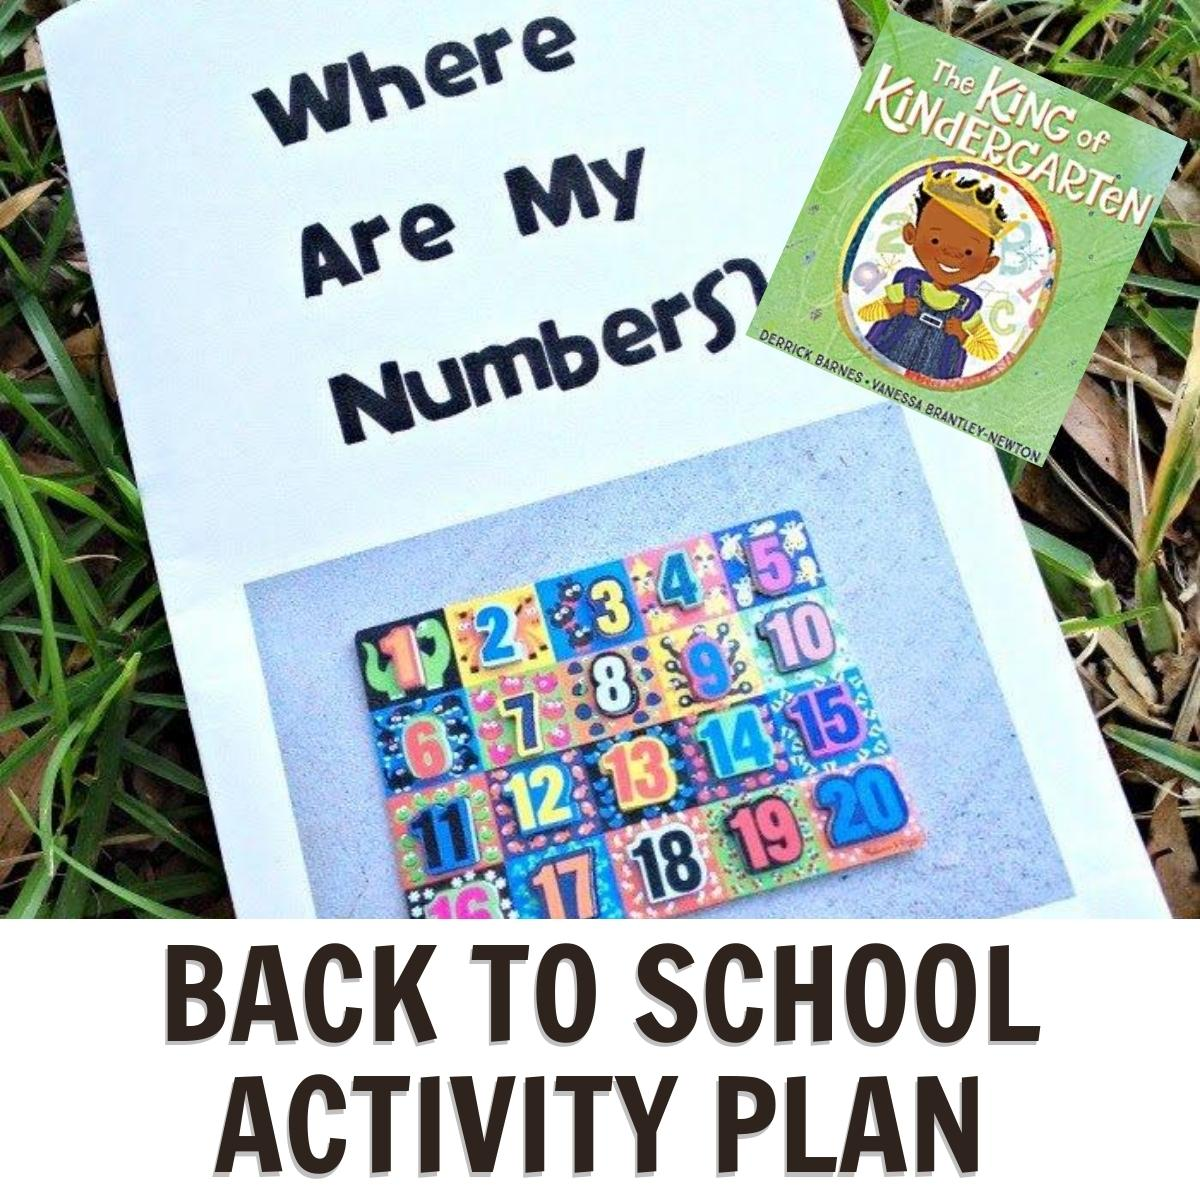 planned week of activities on the theme of back to school for preschoolers